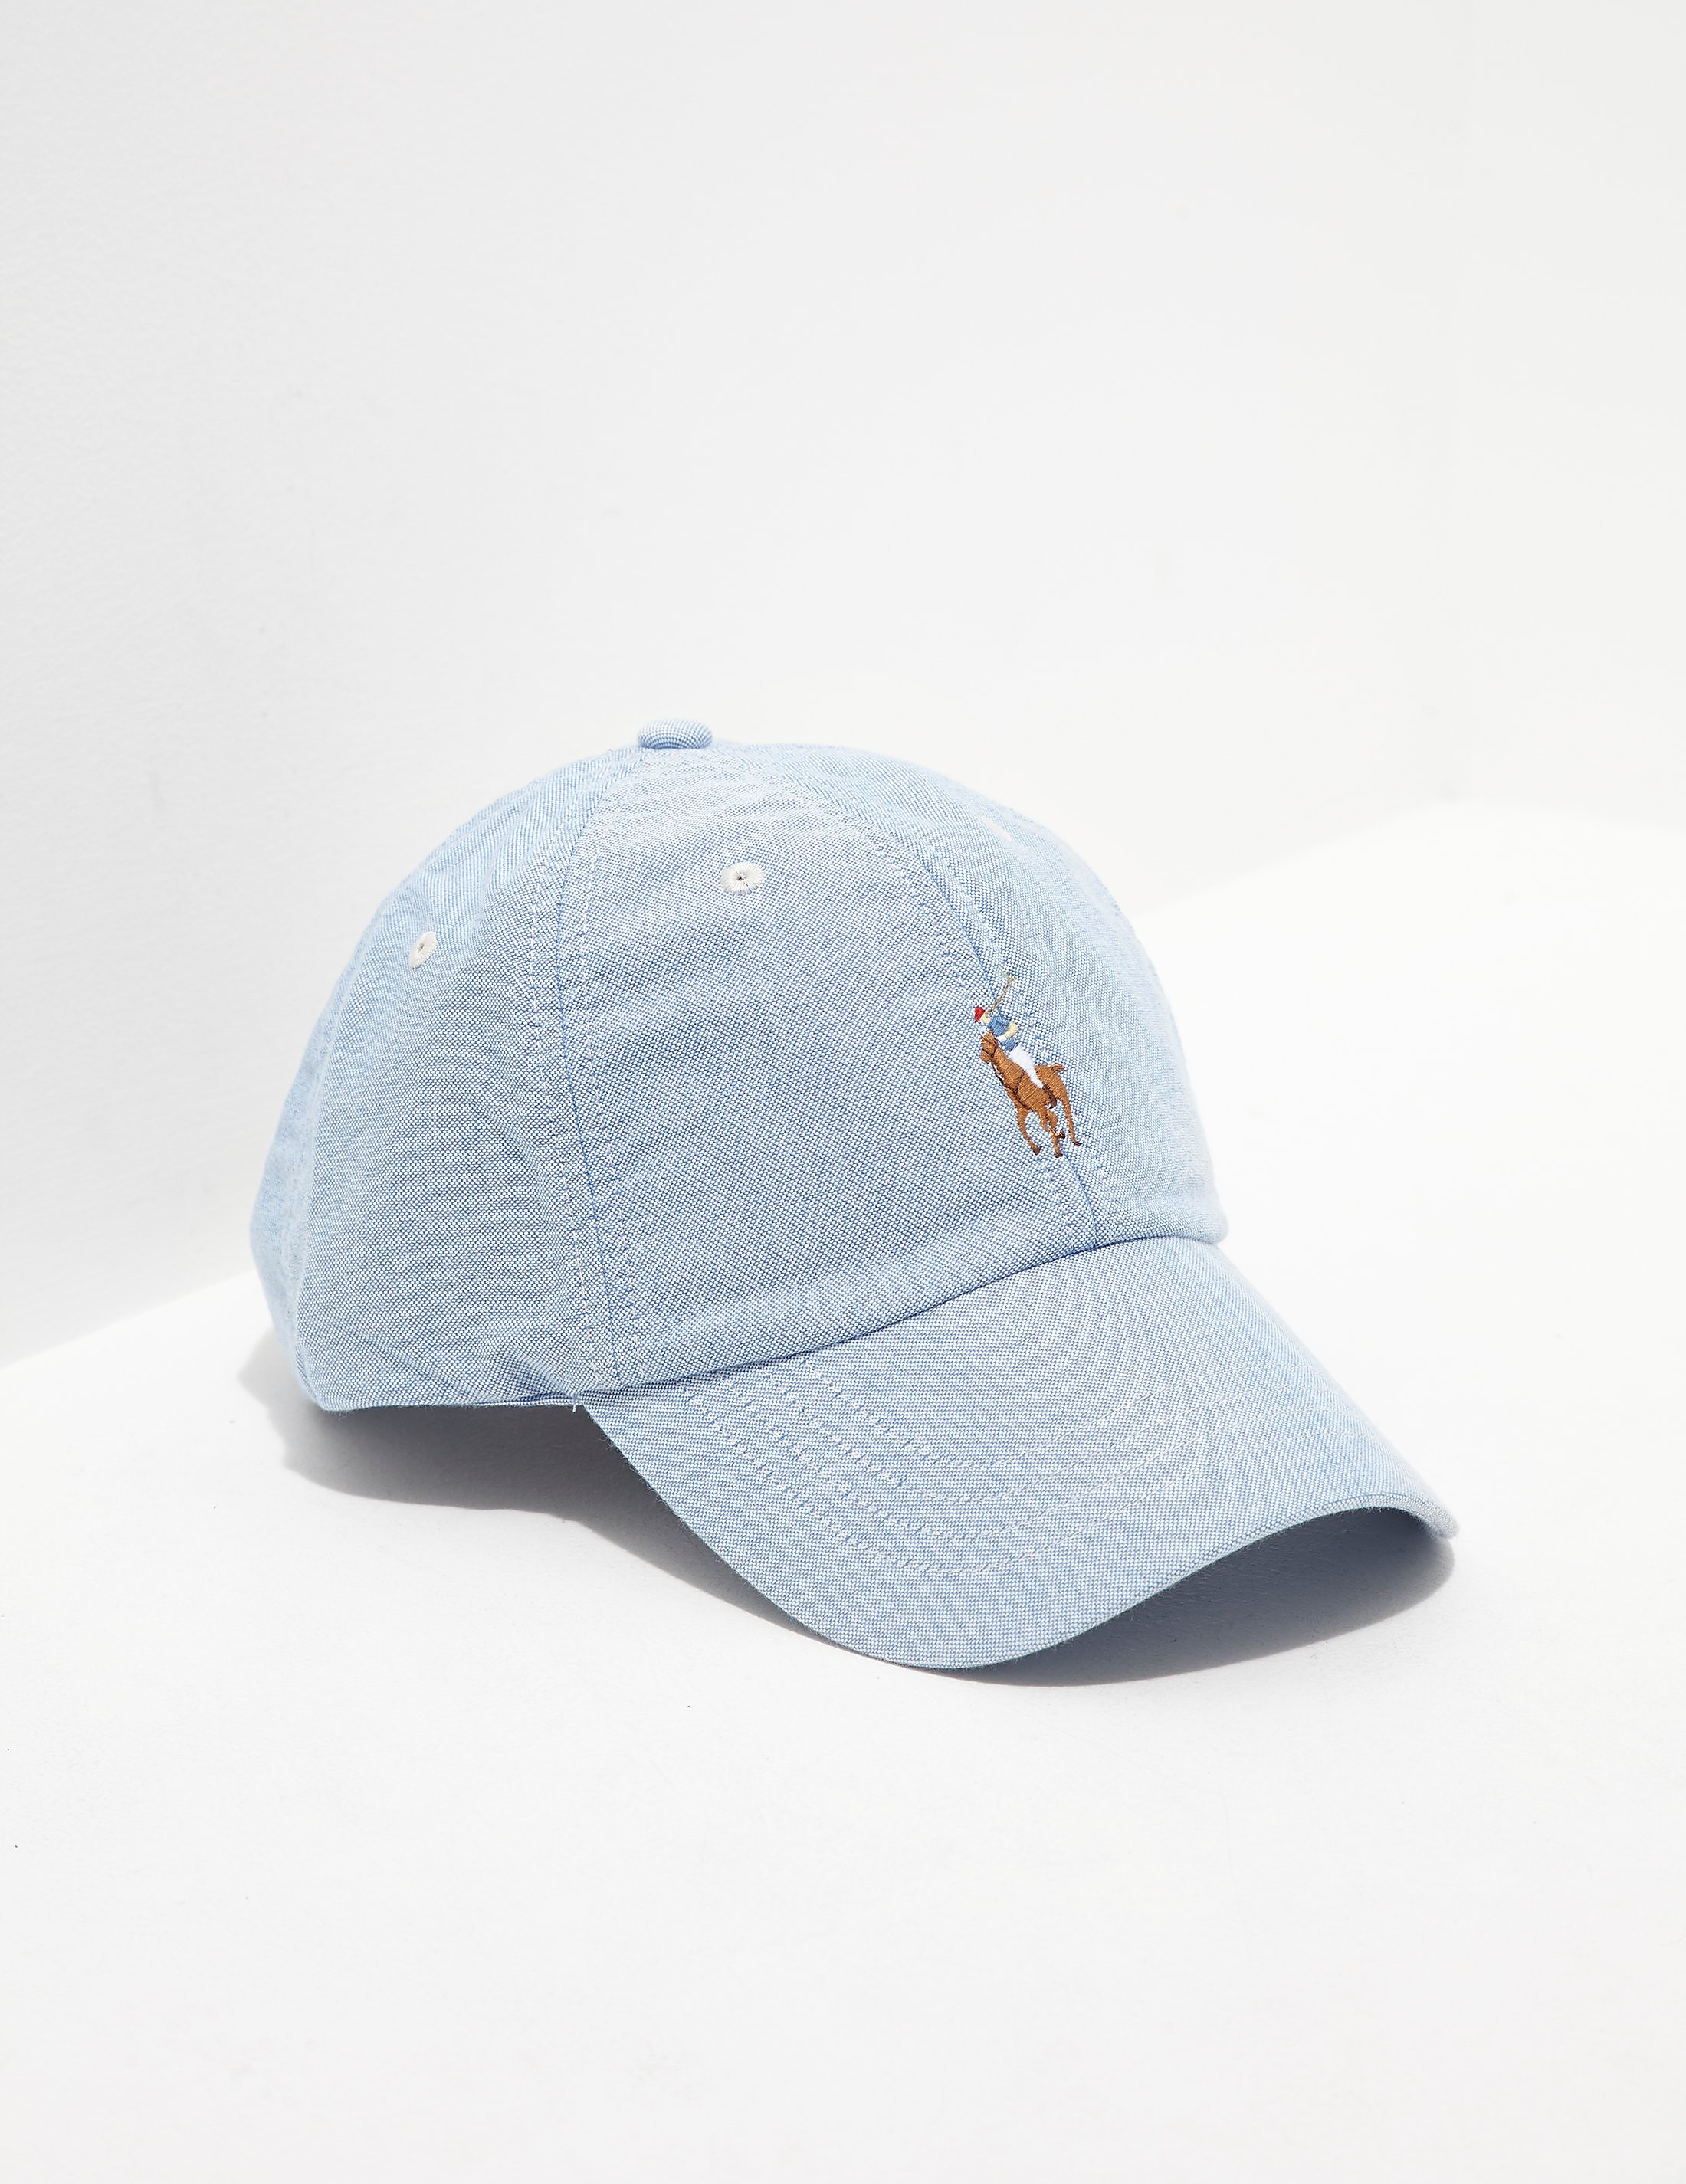 Polo Ralph Lauren Oxford BSR Cap